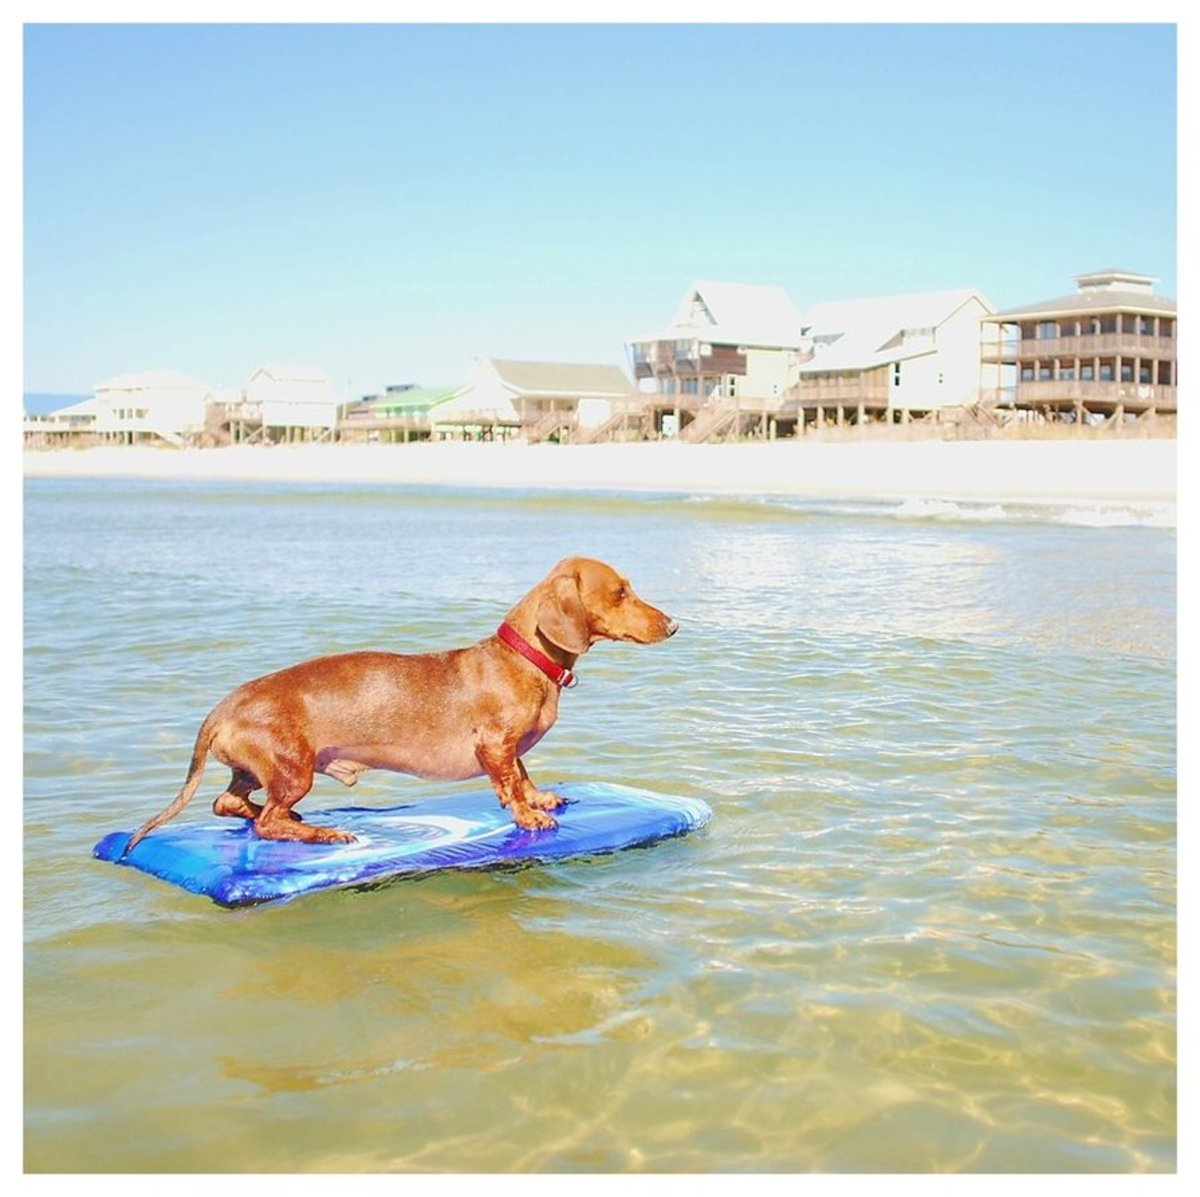 Oota  This is Oo-Oo, or Oota, our family's beloved daschund. He went too the beach every year and surf in the ocean waters of Gulf Shores, Alabama. Now that he has passed on, this image brings back the most wonderful memories.